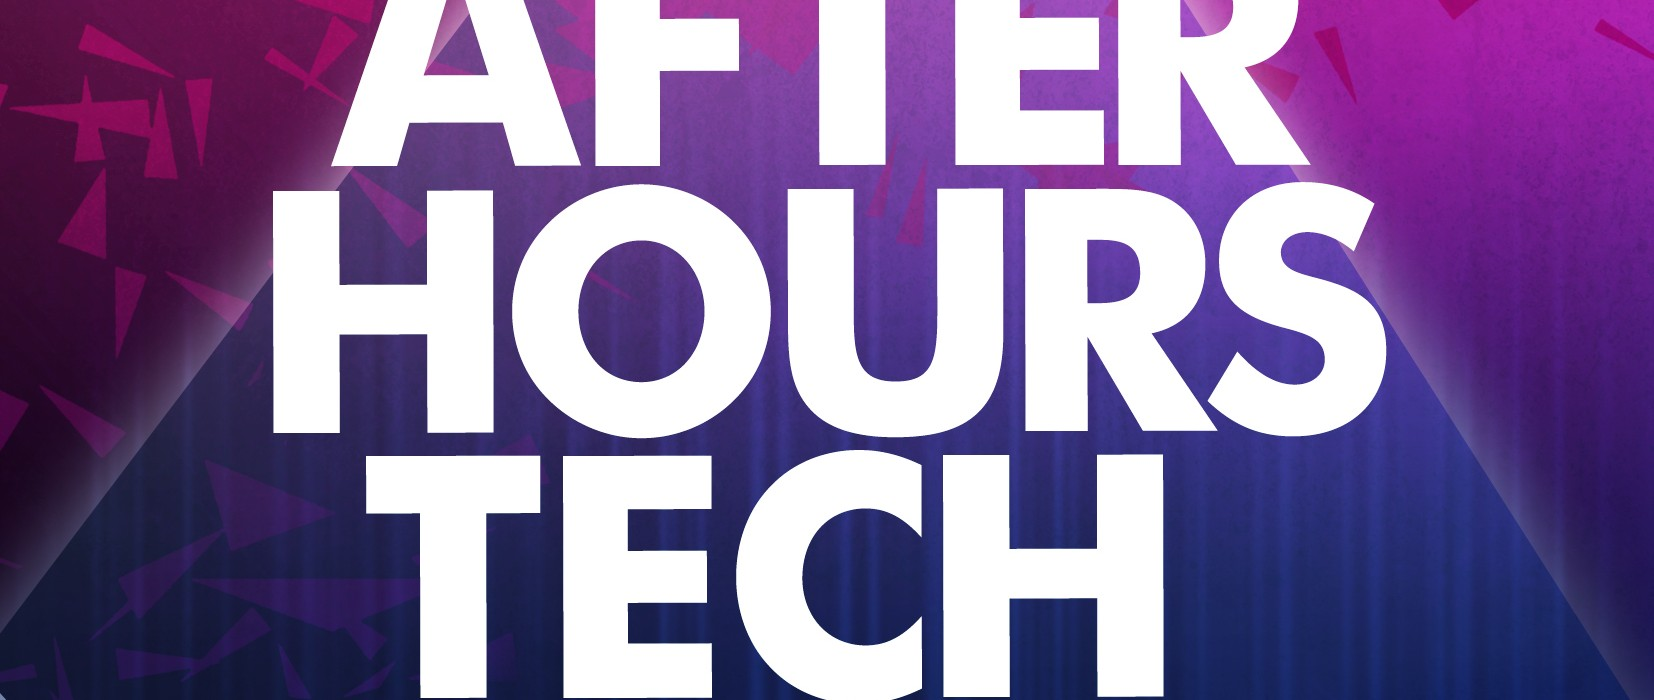 Afterhours Tech House – OUT NOW!!